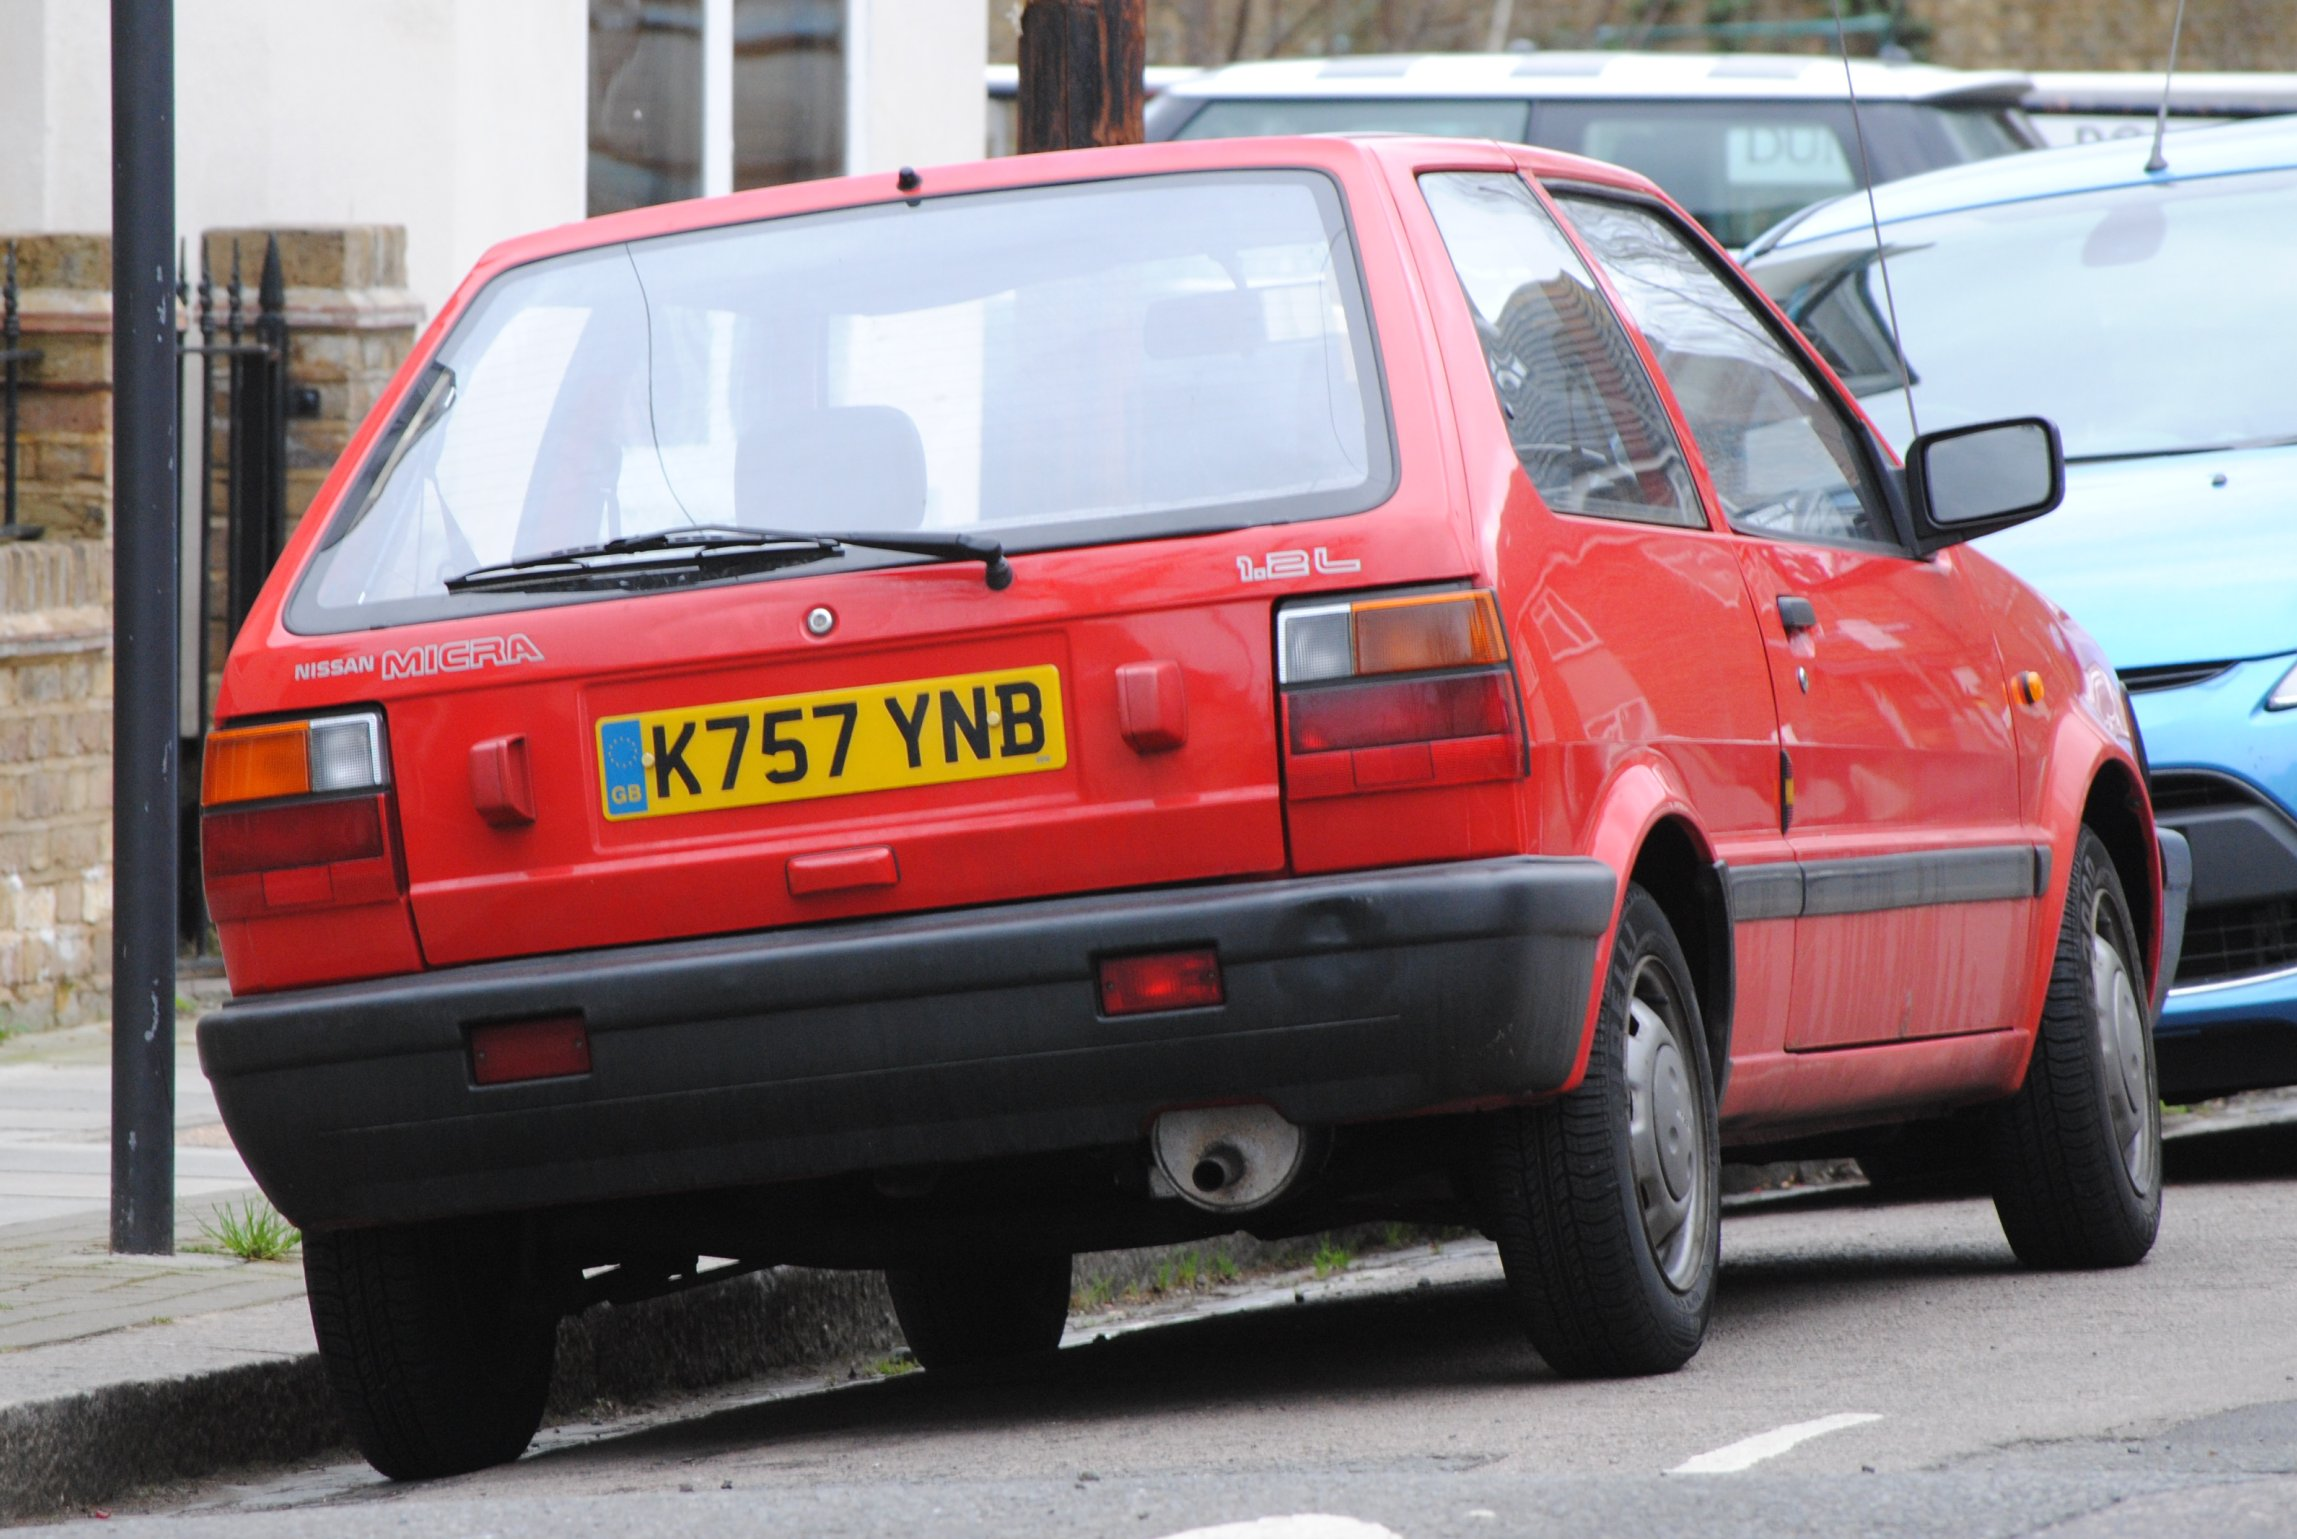 1992 Nissan Micra 1.2 L | Flickr - Photo Sharing!